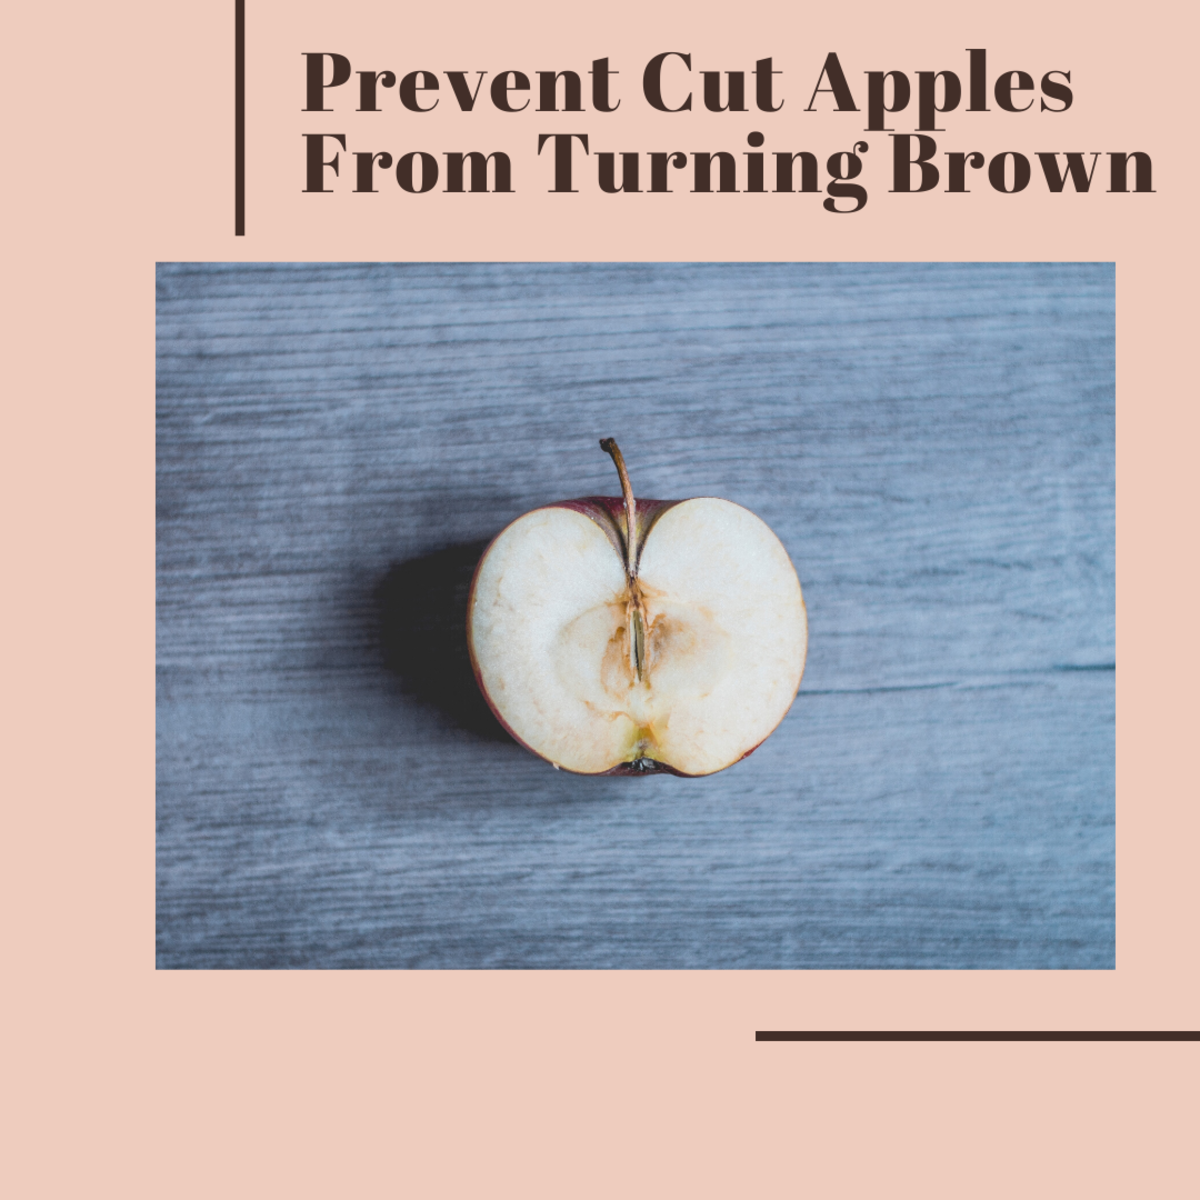 Cut apples don't have to turn brown. Learn how to keep them looking fresh!